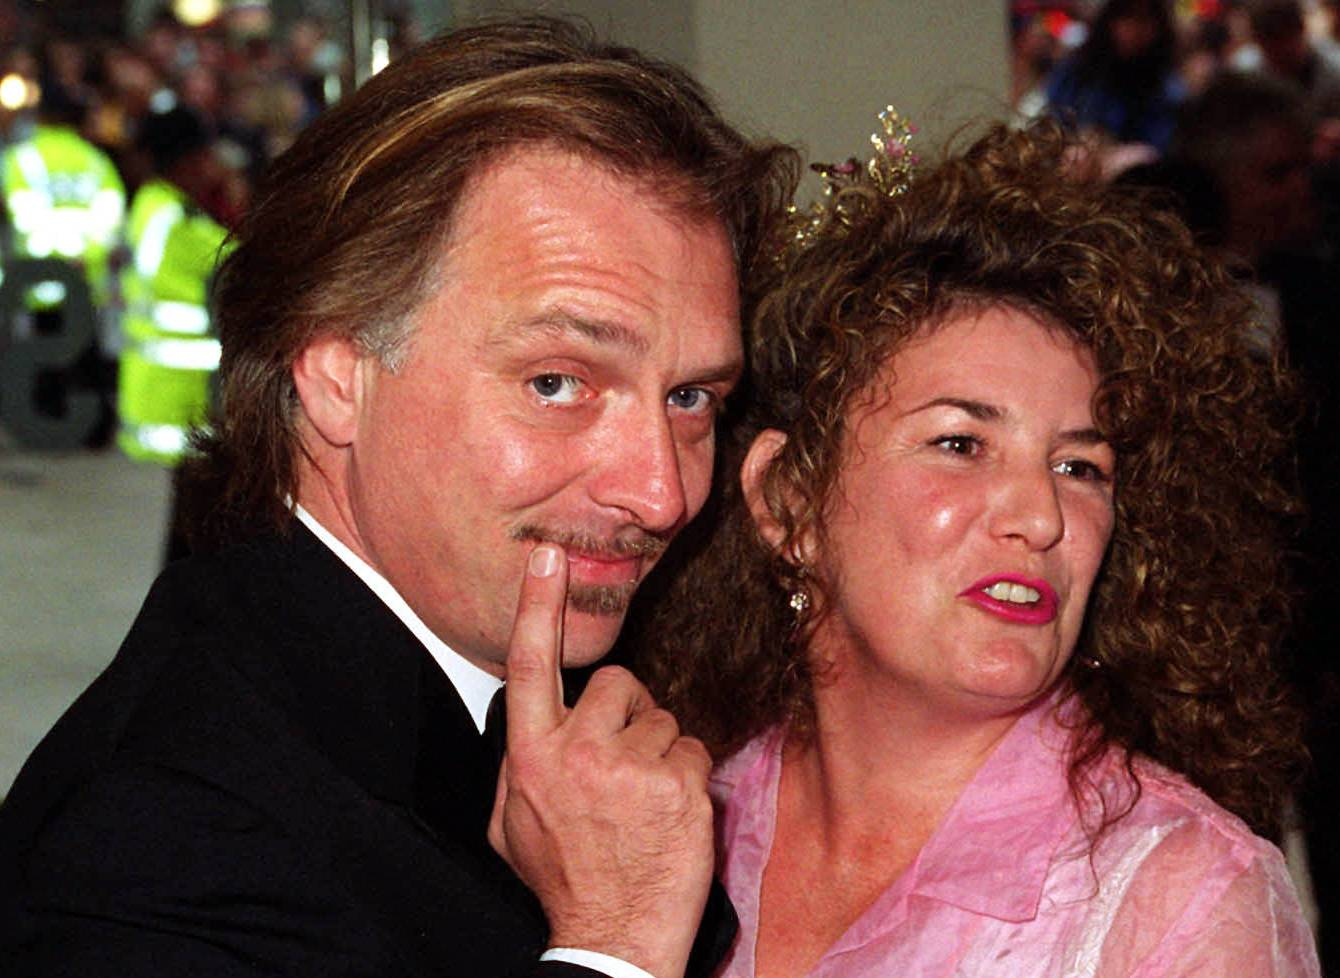 British comedian and actor Rik Mayall with his wife Barbara.